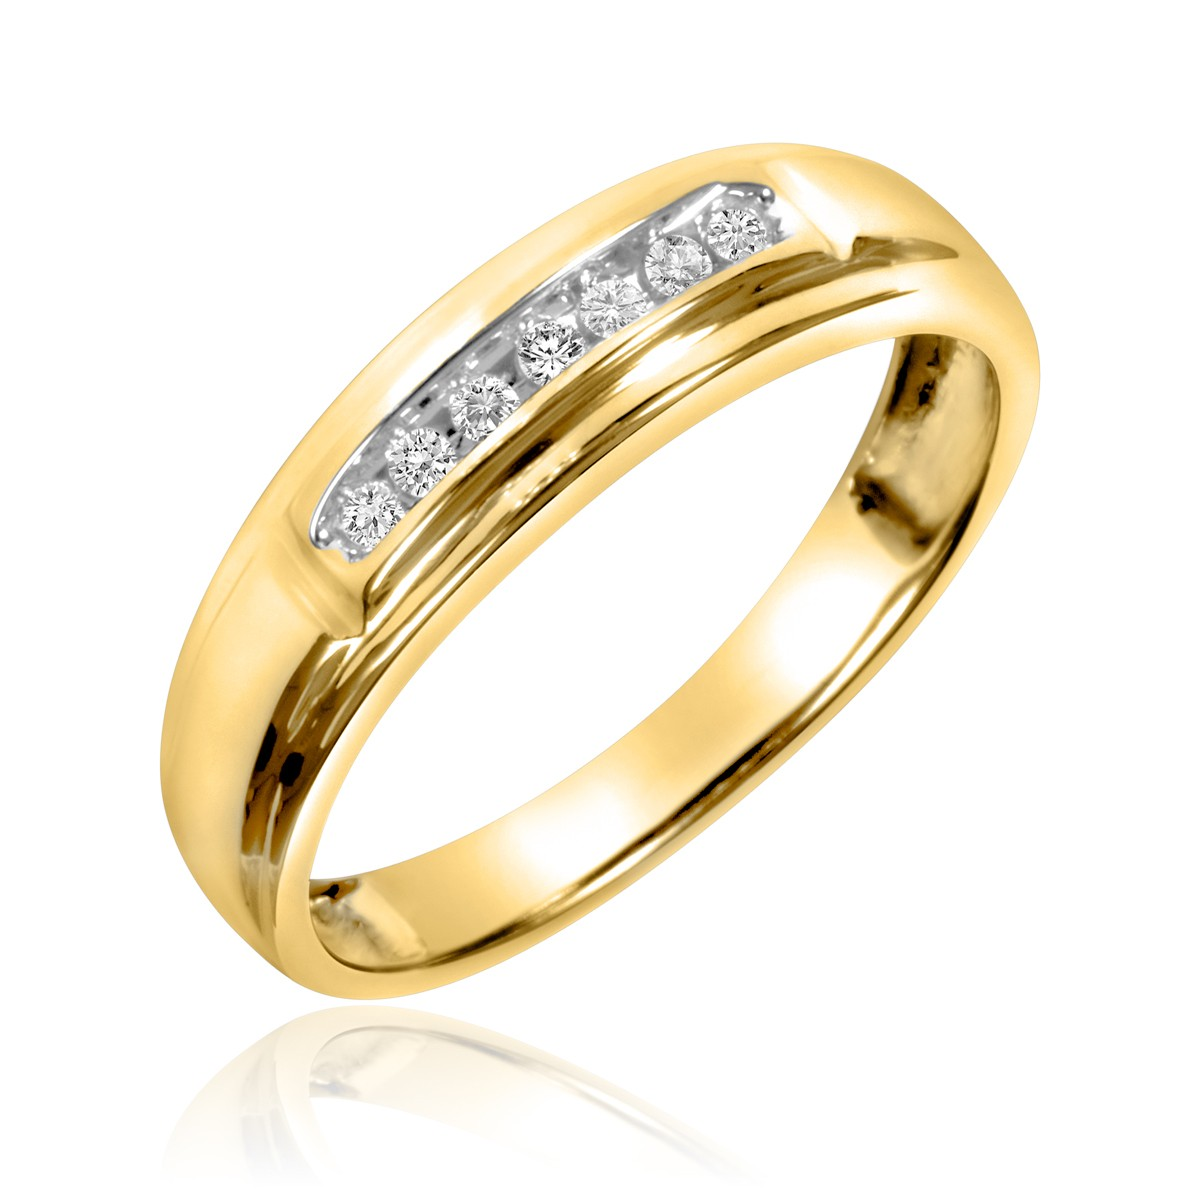 1/20 Carat T.W. Diamond Ladies' Wedding Band 14K Yellow Gold